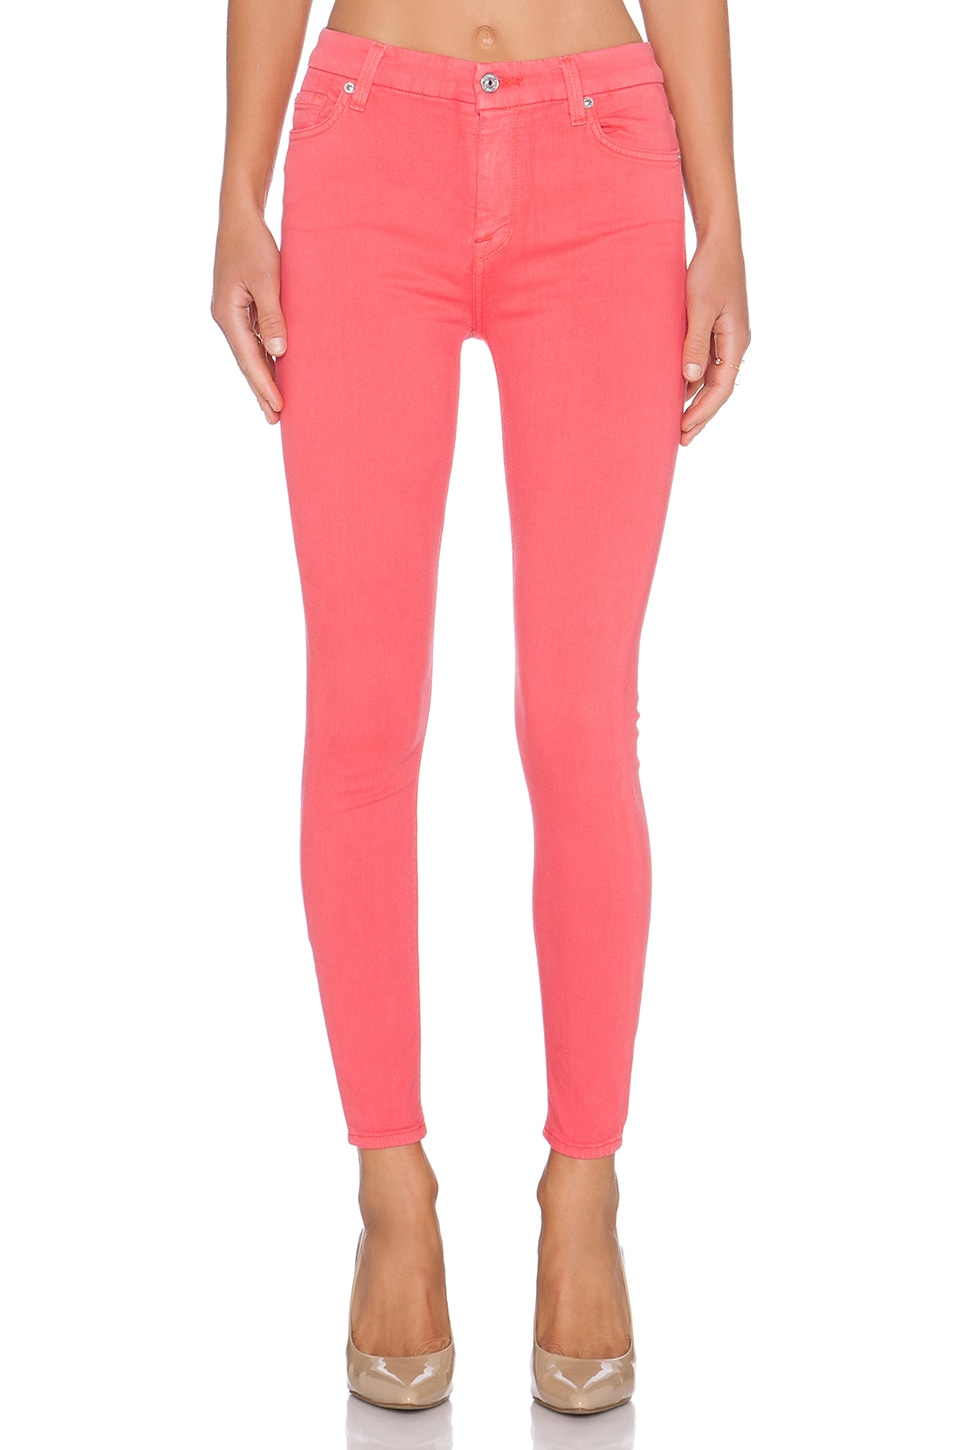 7 For All Mankind High Waist Ankle Skinny in Coral